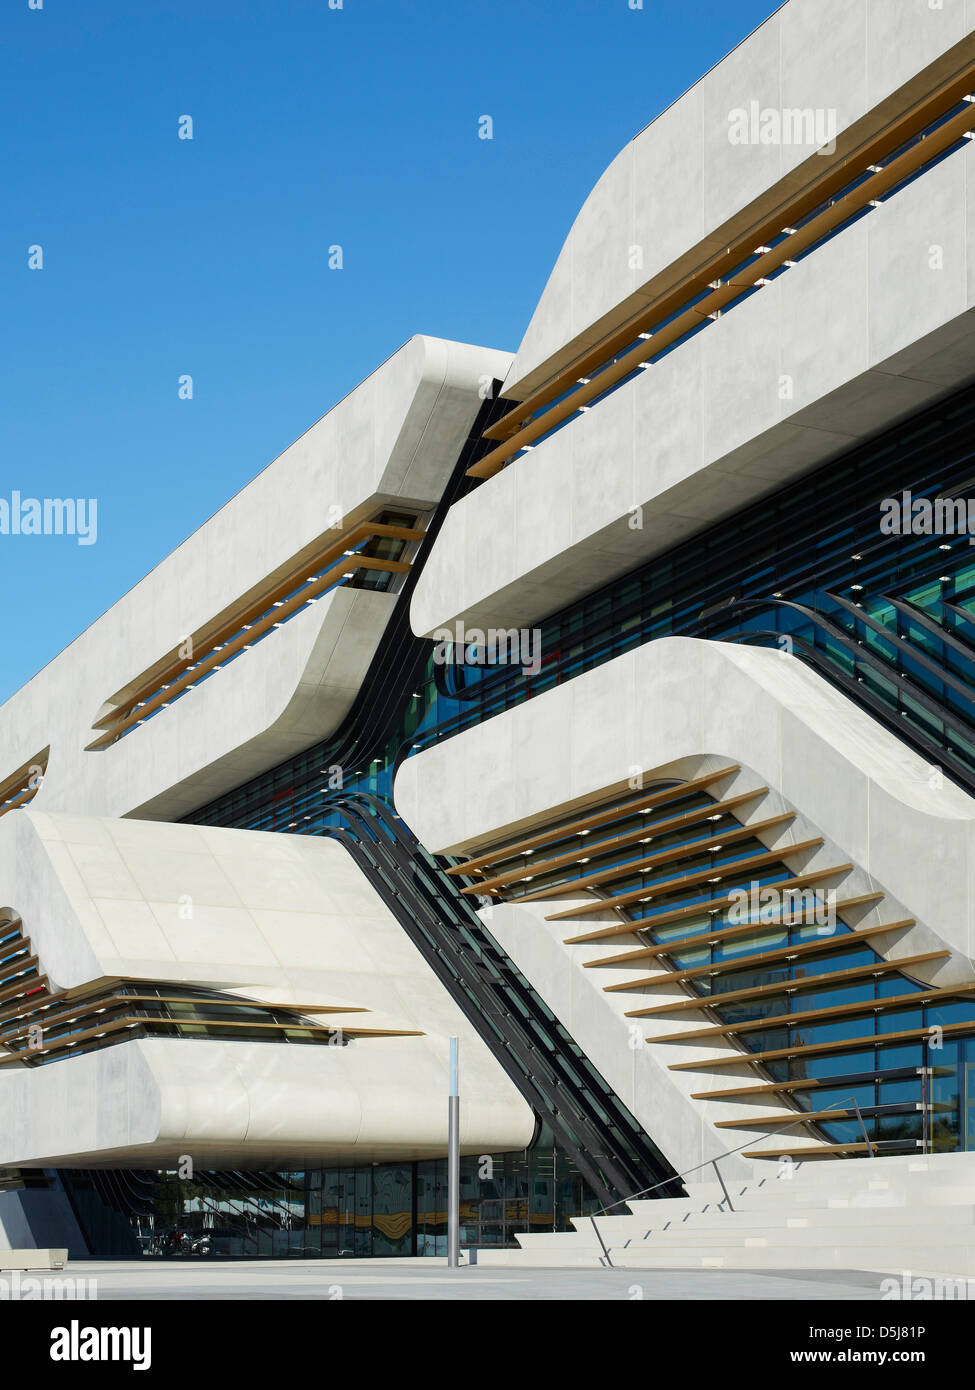 Pierresvives montpellier france architect zaha hadid for Architecture oblique